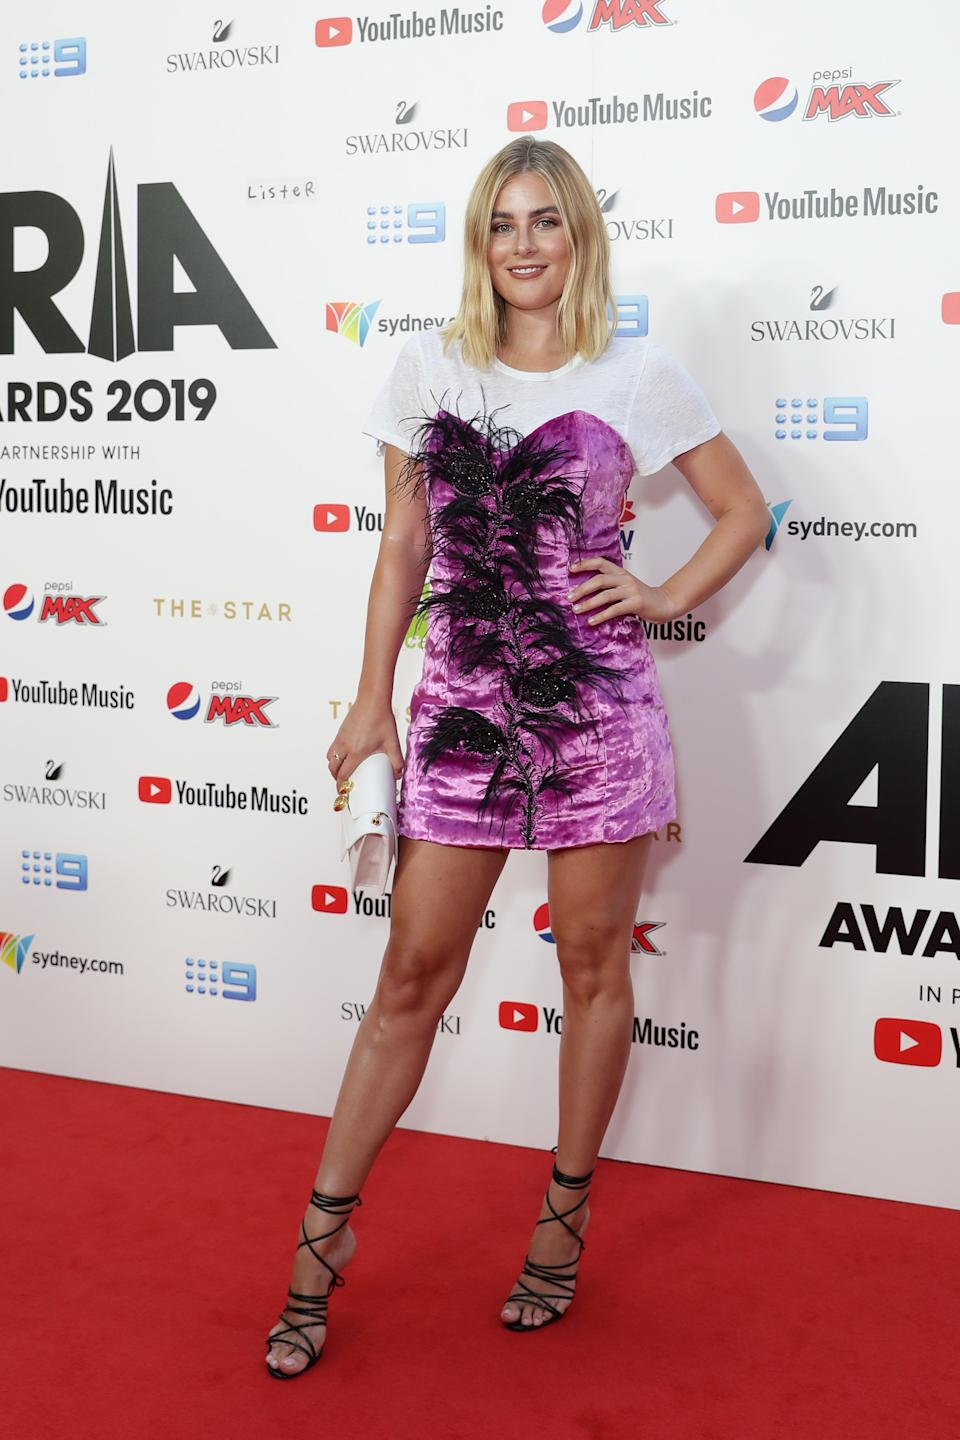 Carissa Walford arrives for the ARIA Awards 2019 at The Star. Photo: Getty Images